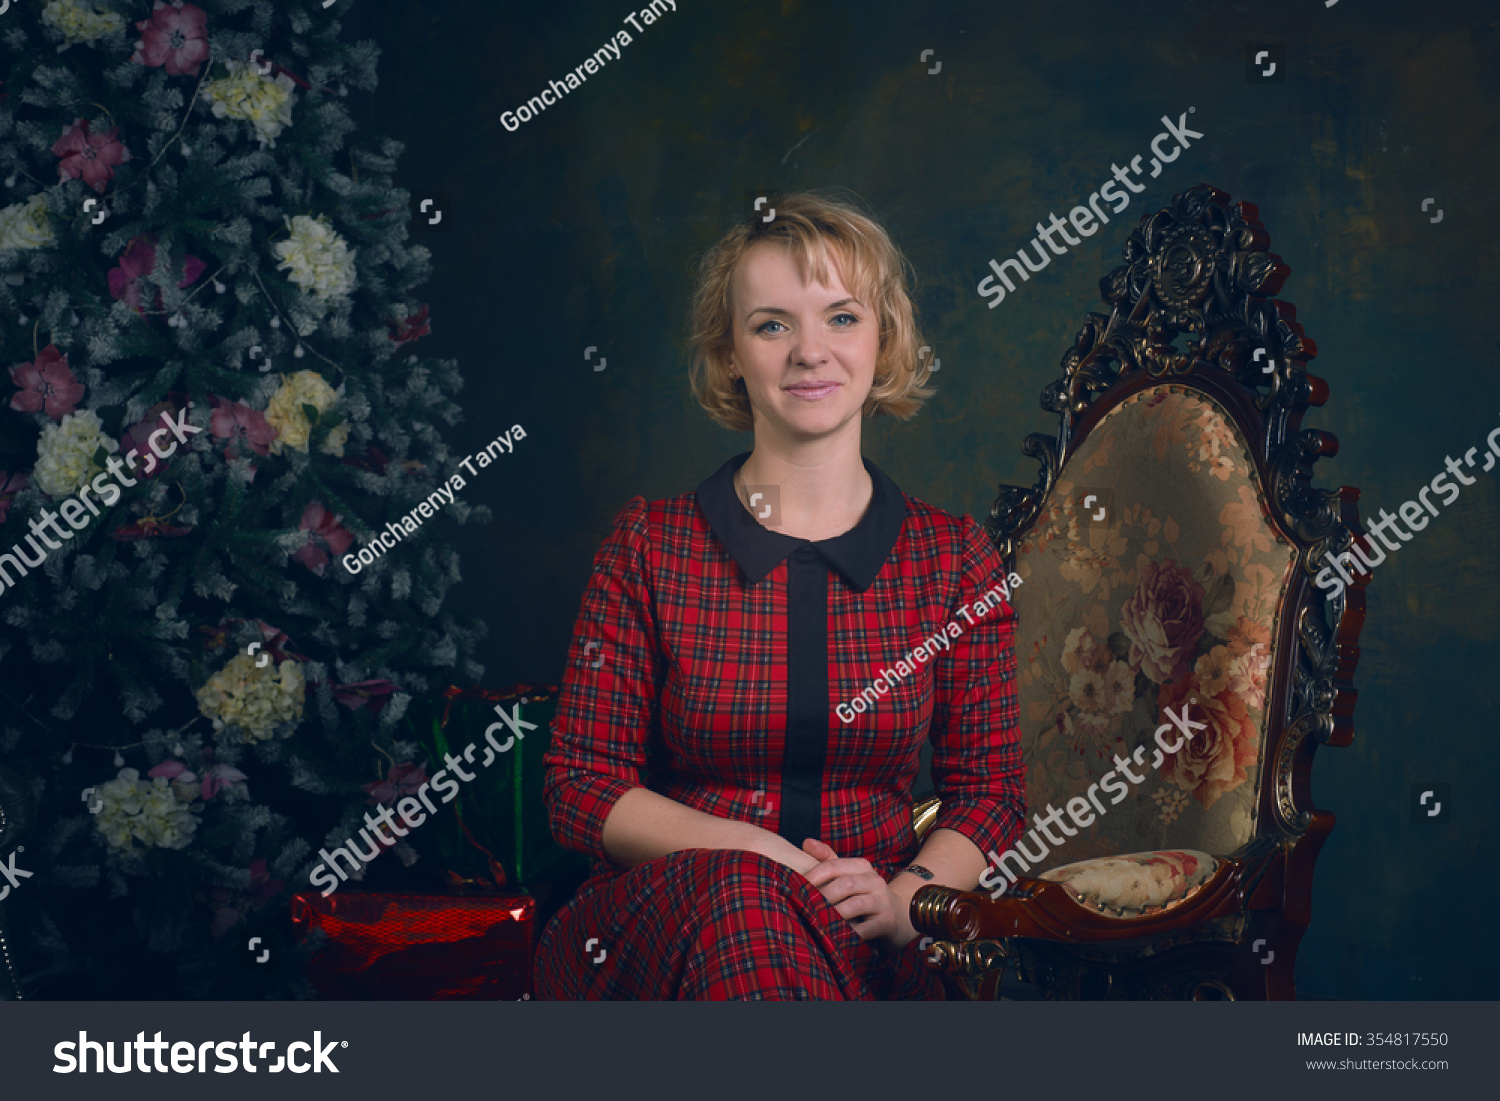 Girl in retro vintage dress sitting in the chair next to the Christmas tree